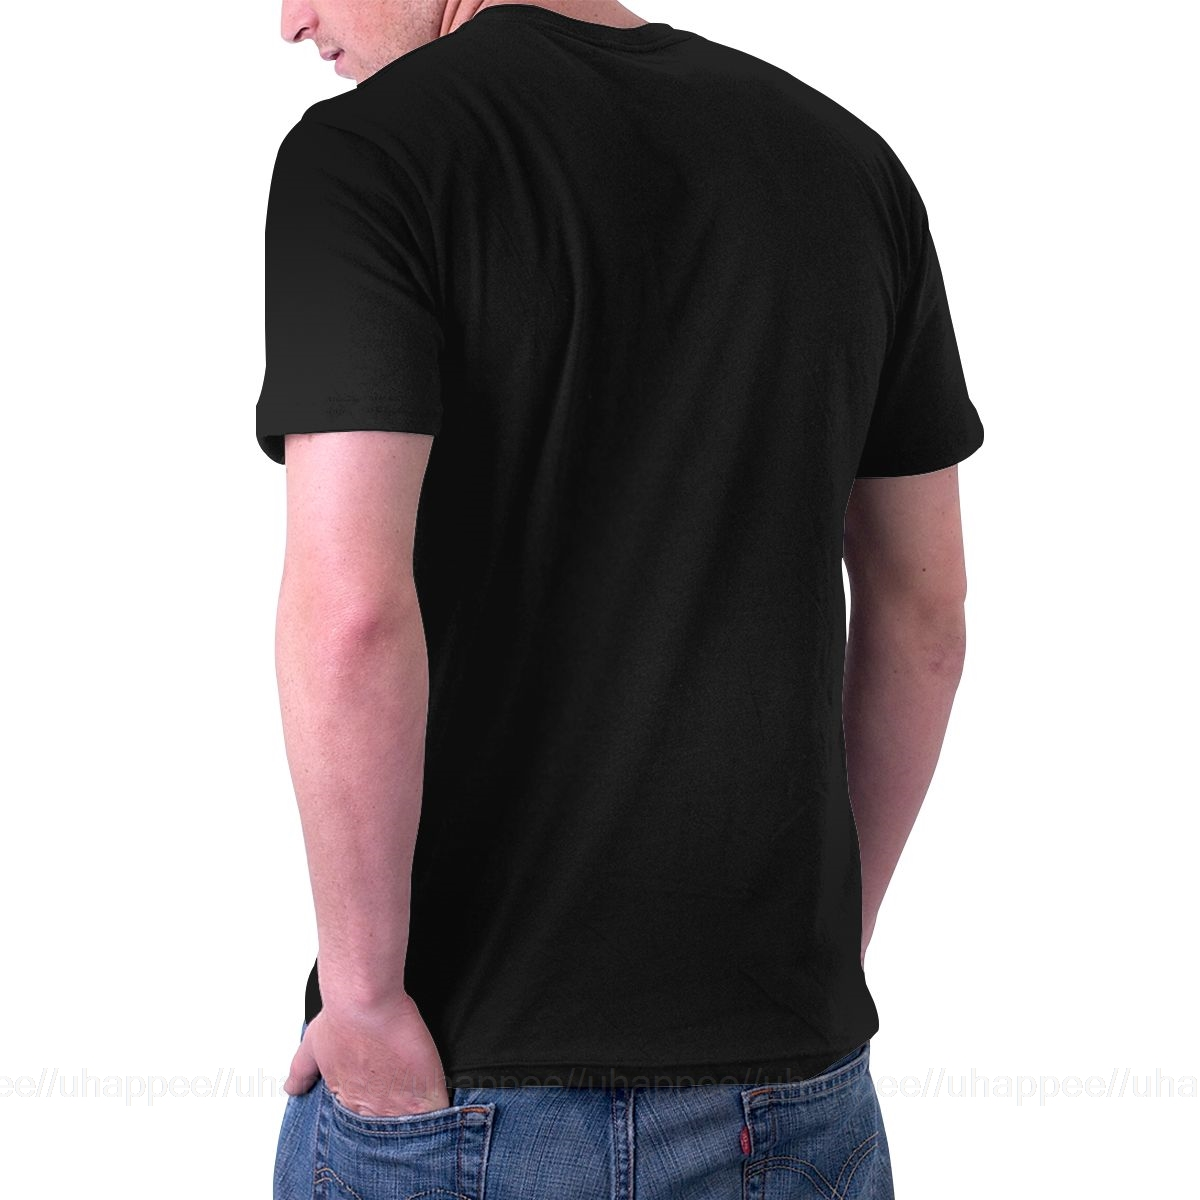 Black All About Fishing Tee Shirt Men Top Quality Short Sleeves Pure Cotton Crew Neck Tee Shirts